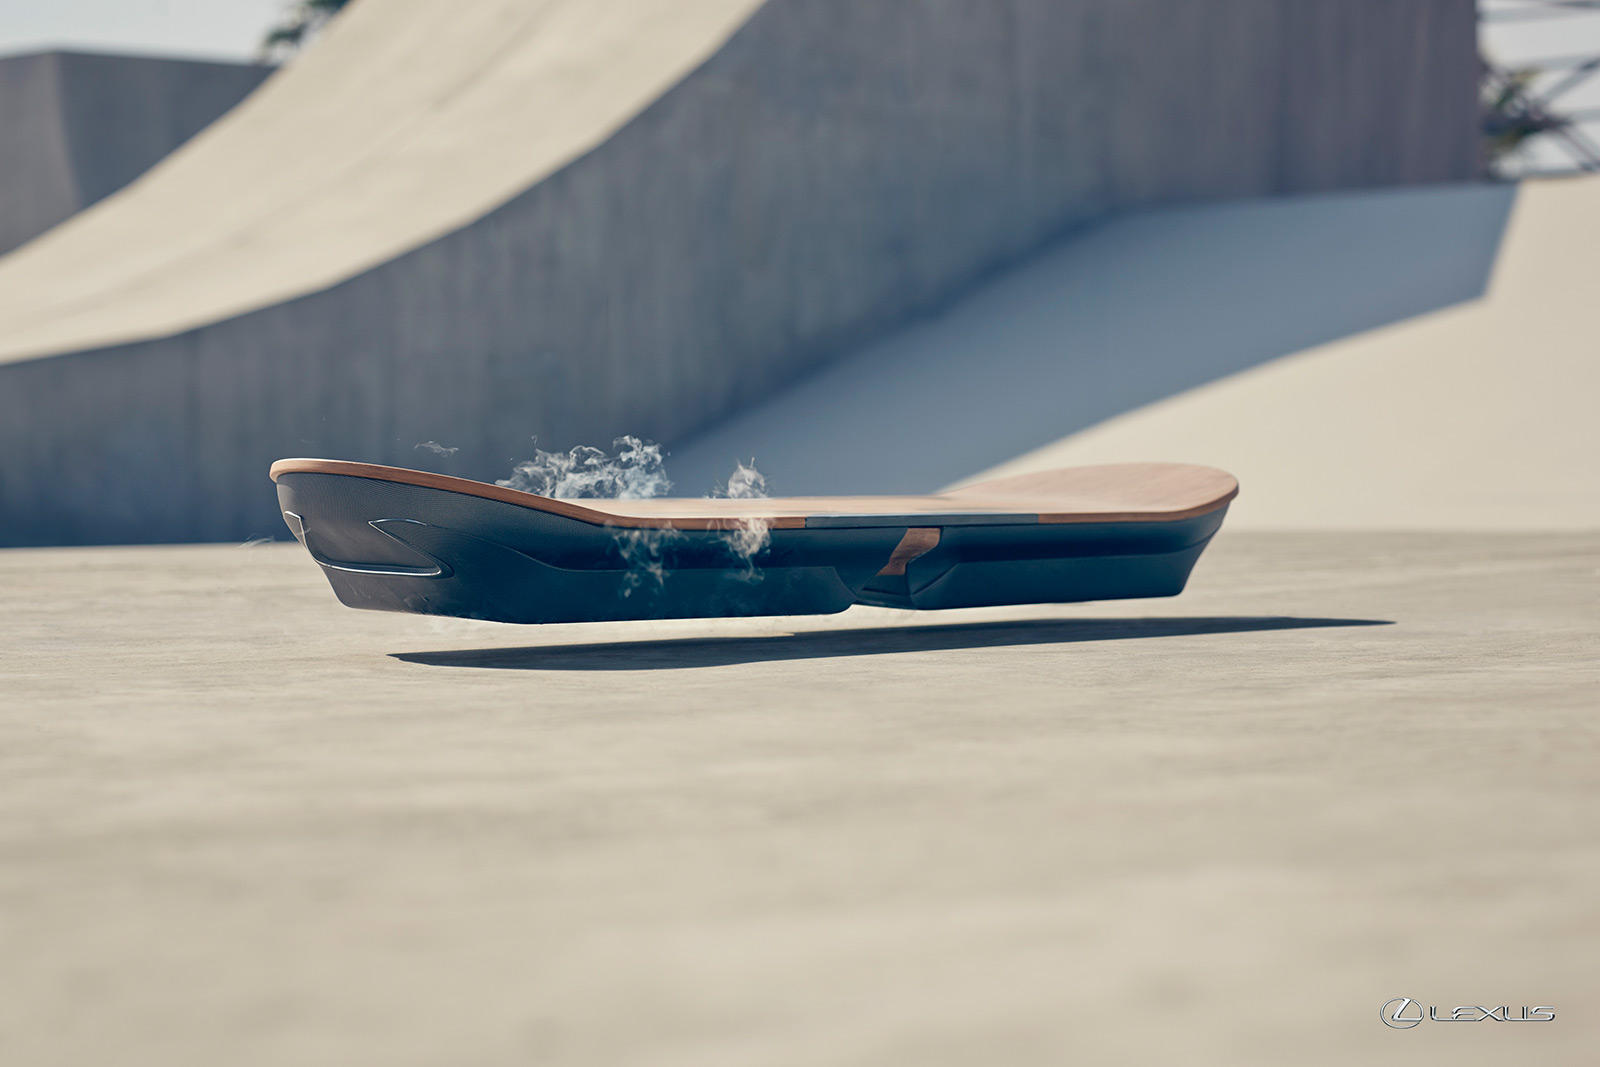 2015 lexus pr sente en vid o le hoverboard du futur french driver. Black Bedroom Furniture Sets. Home Design Ideas